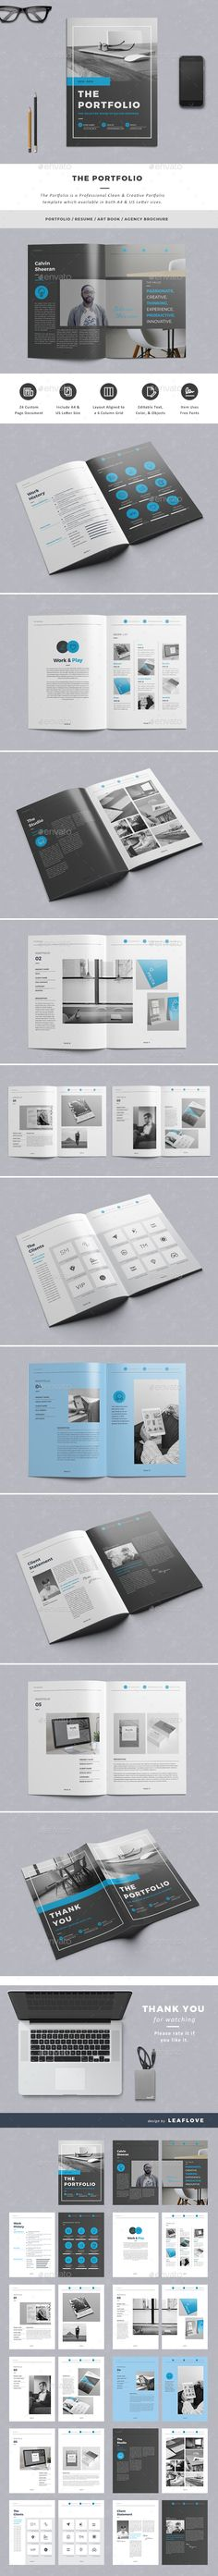 The Portfolio Brochure Template InDesign INDD #design Download: http://graphicriver.net/item/the-portfolio/14347470?ref=ksioks